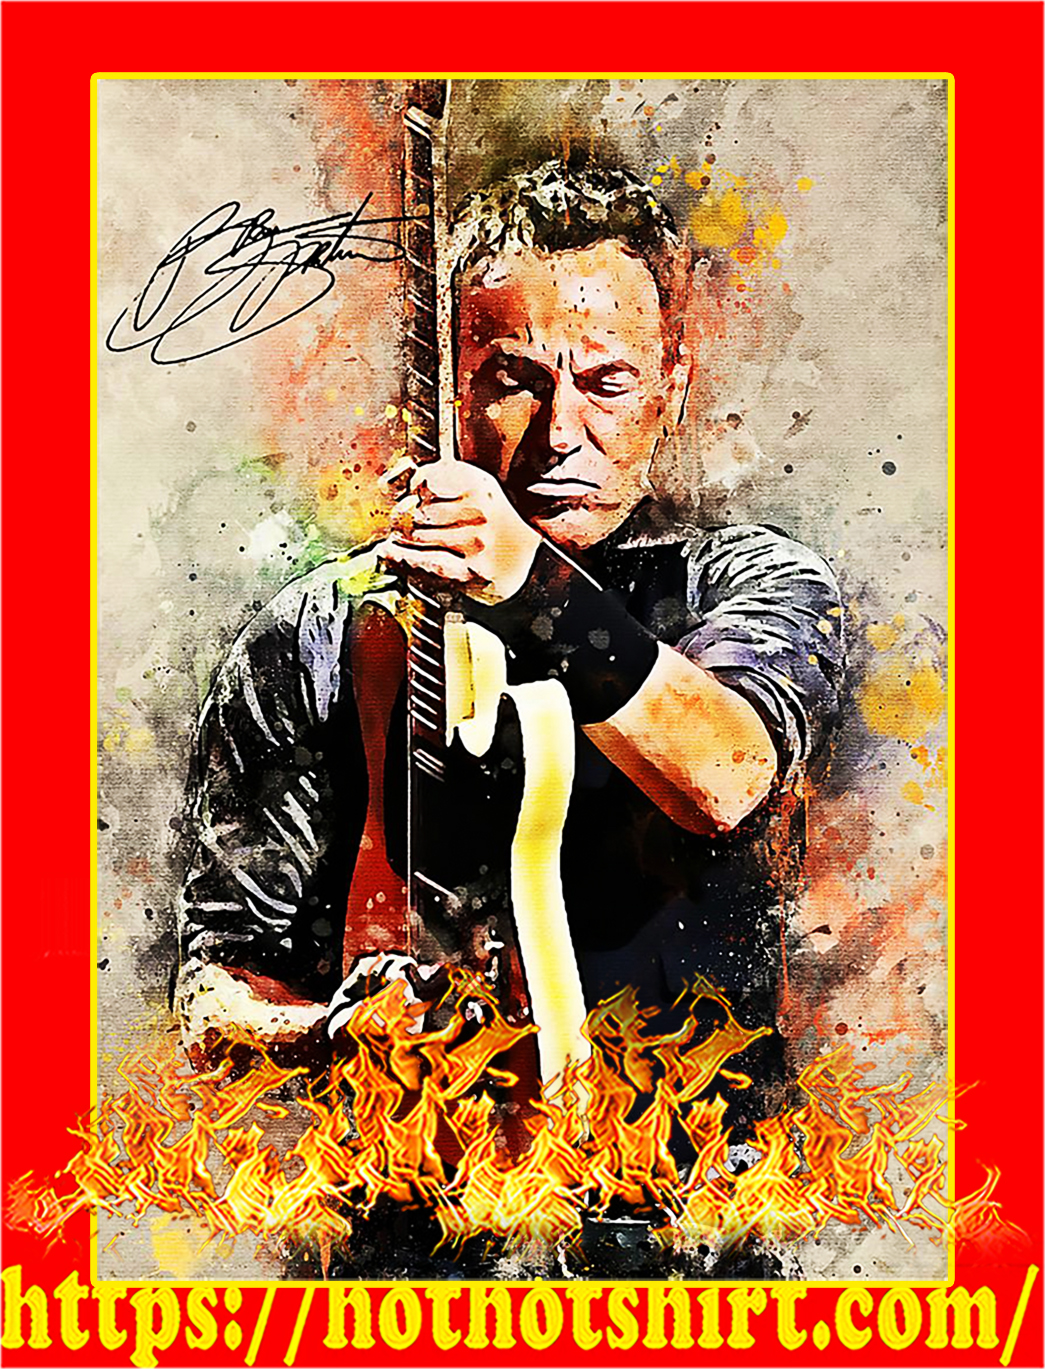 Legend bruce springsteen signature poster - A1